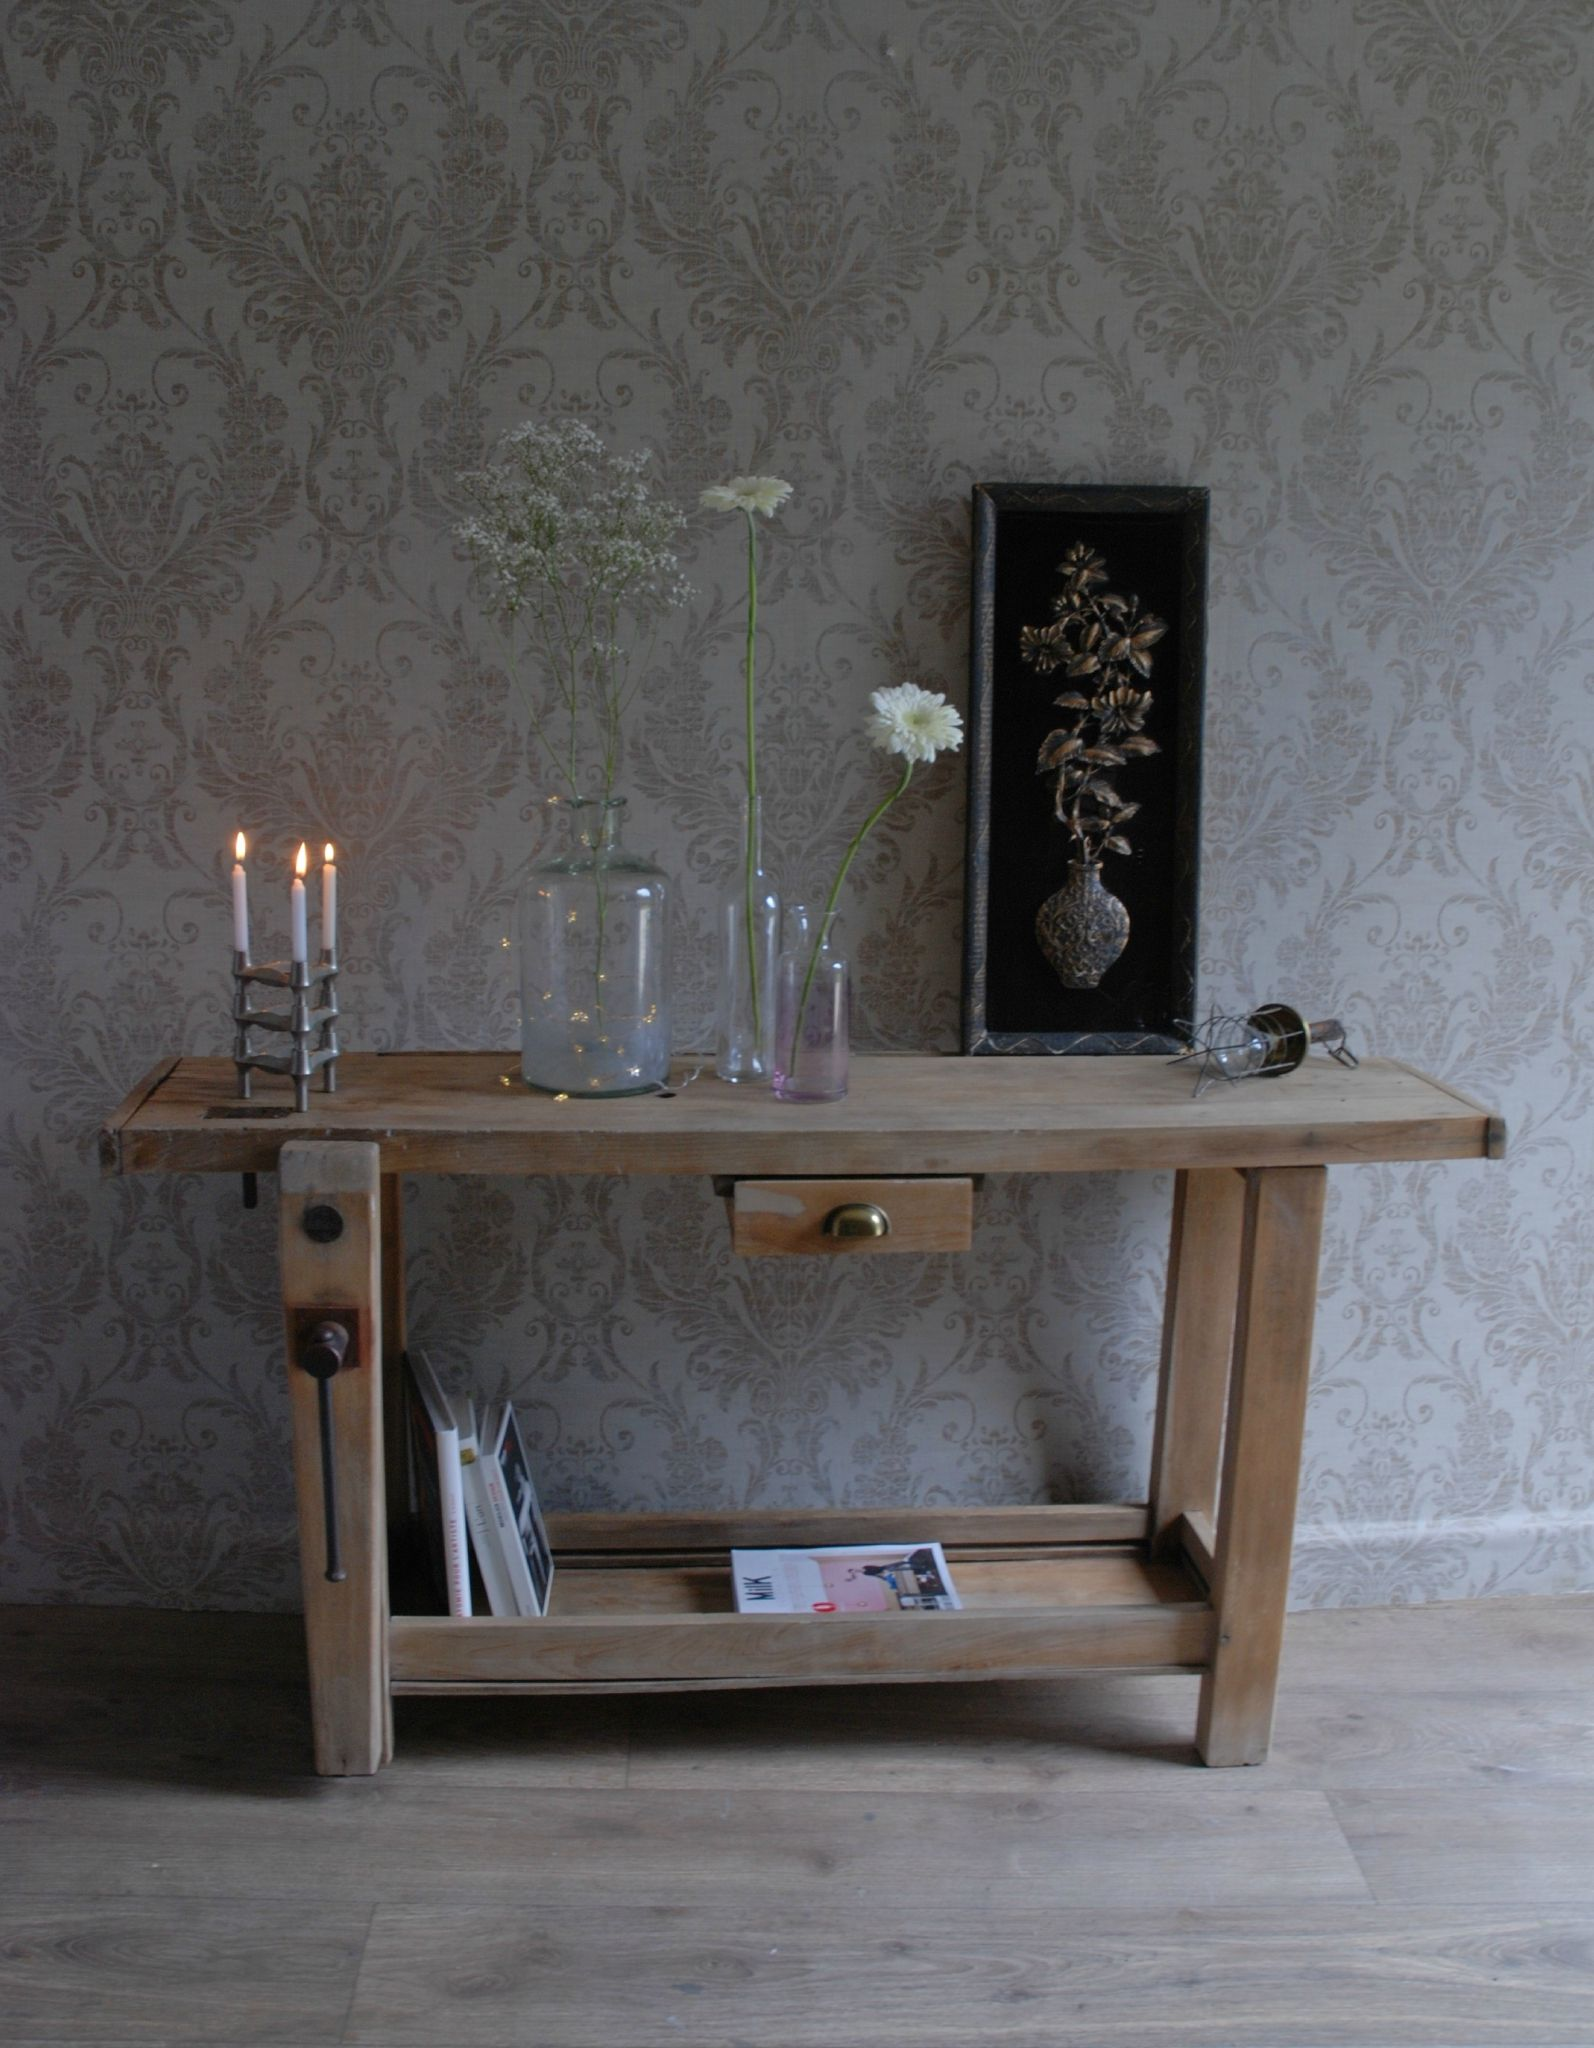 Ancien Tabli Workbench Pinterest Tablis Ancien Et Alchimie # Meuble Console Pour Tv